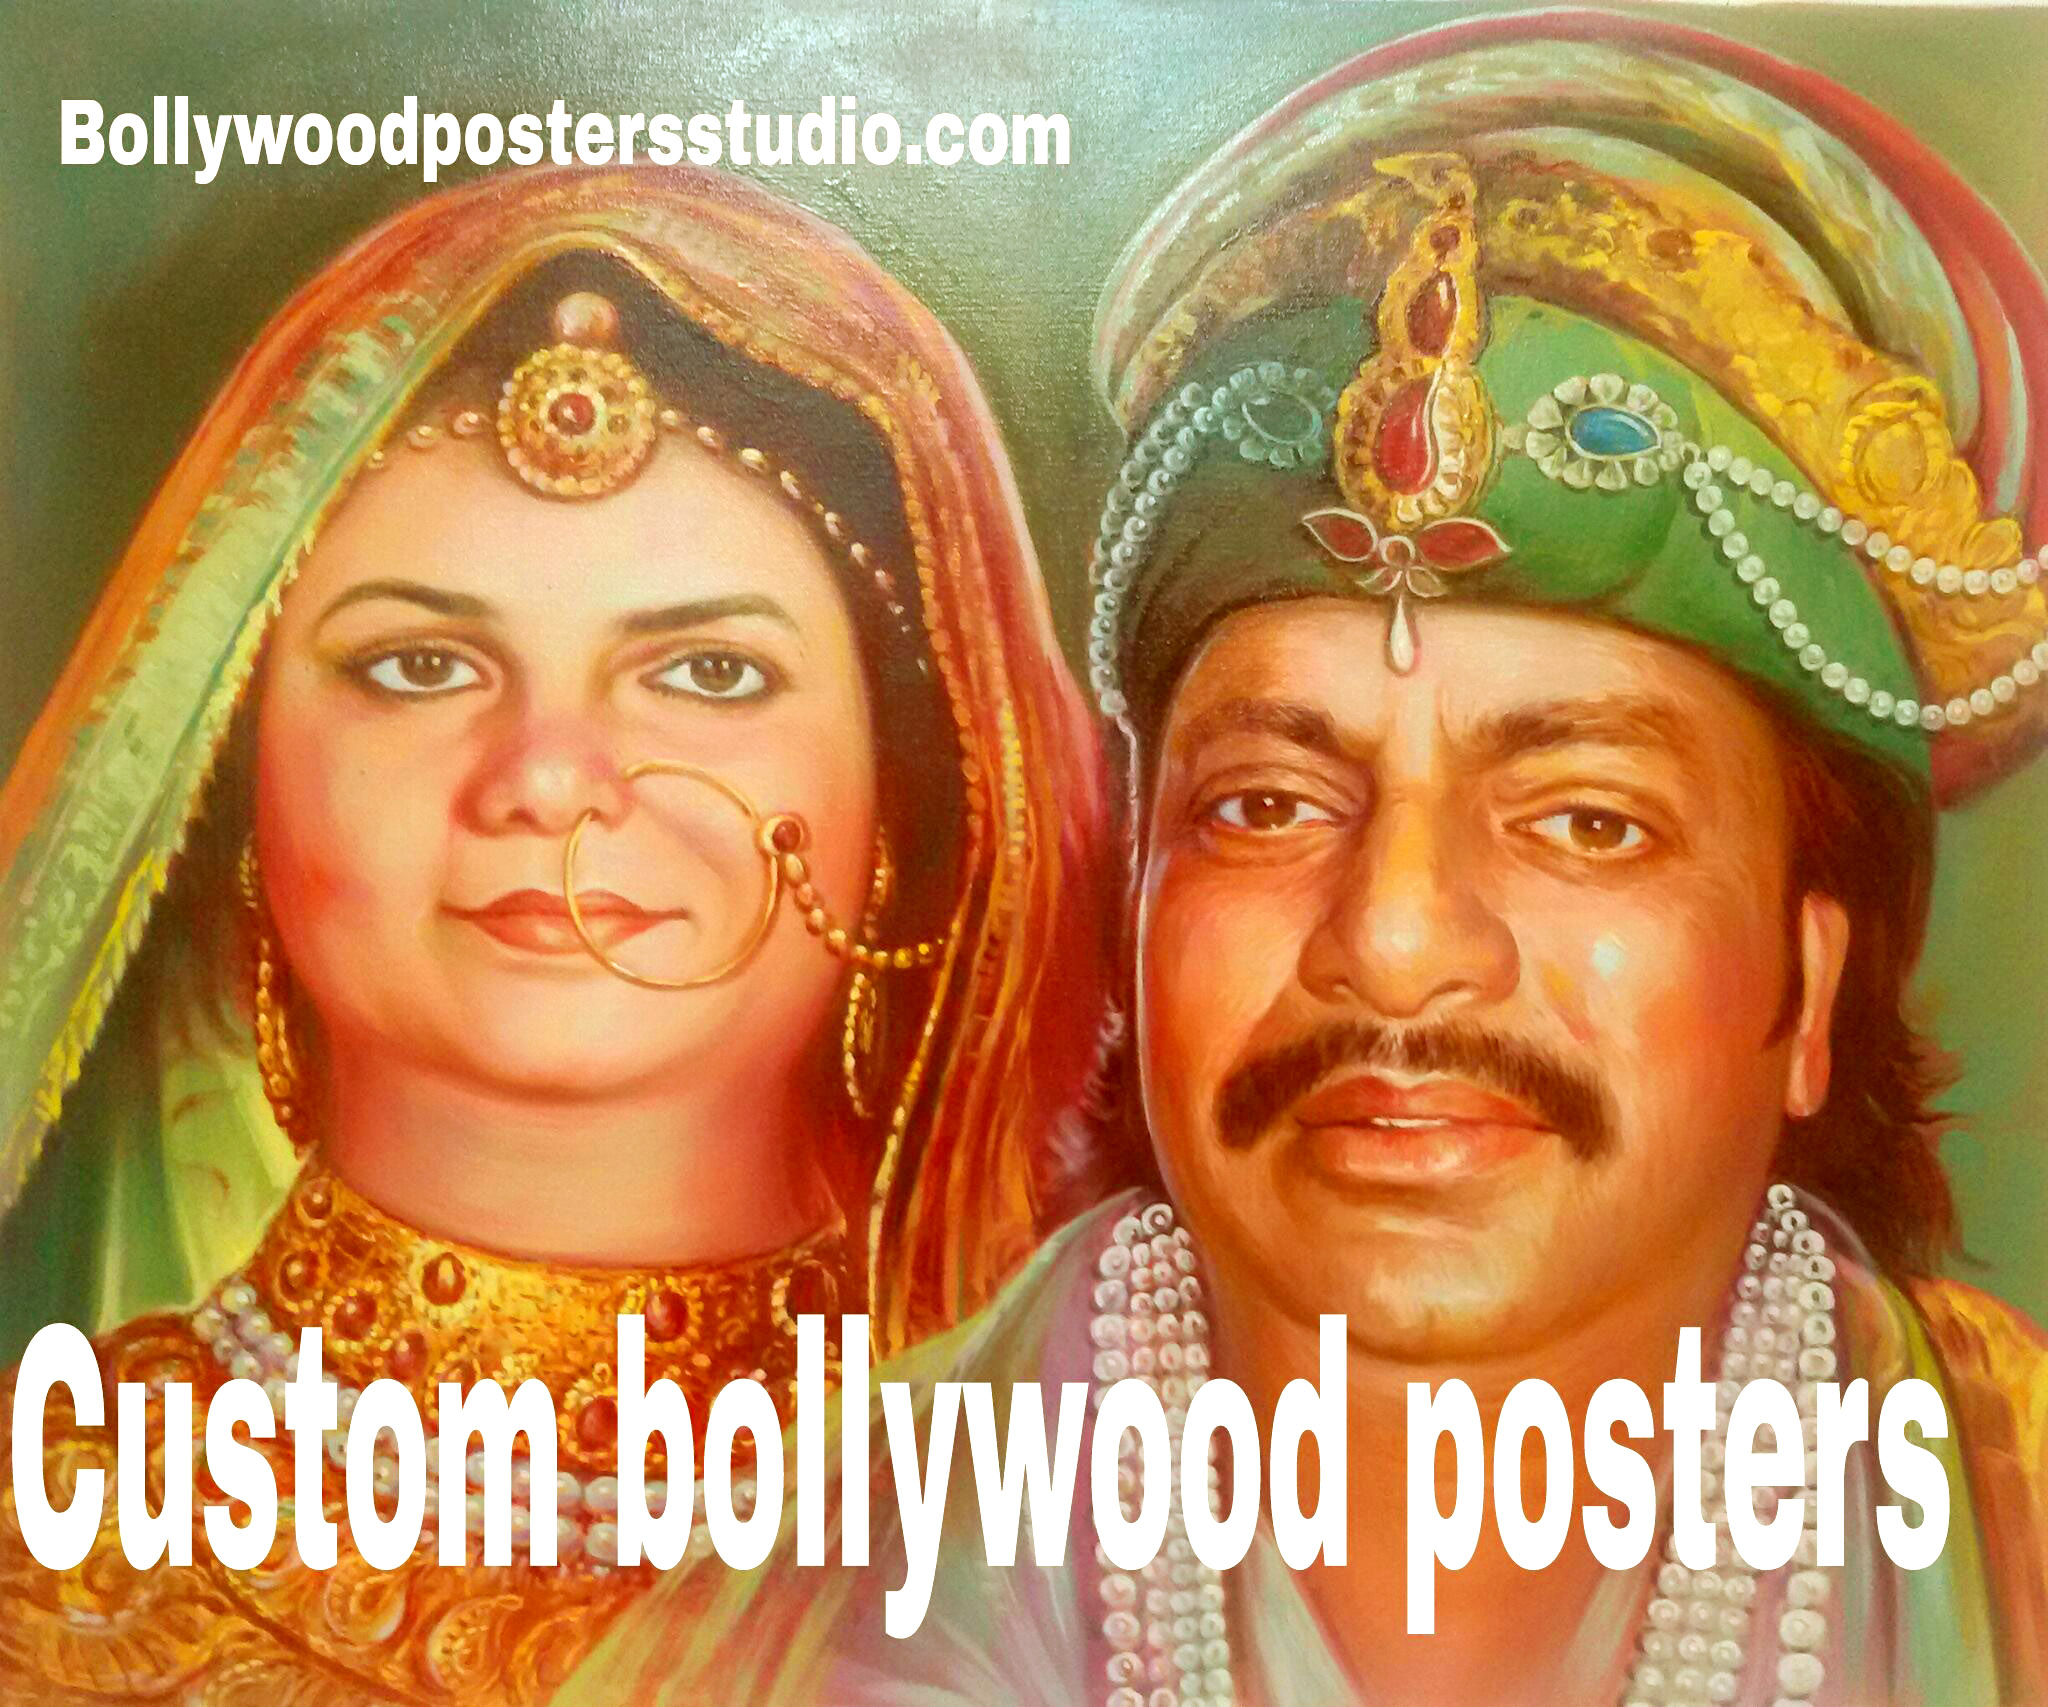 custom online bollwood poster hand painted portrait- the fusion of photo and bollywood poster